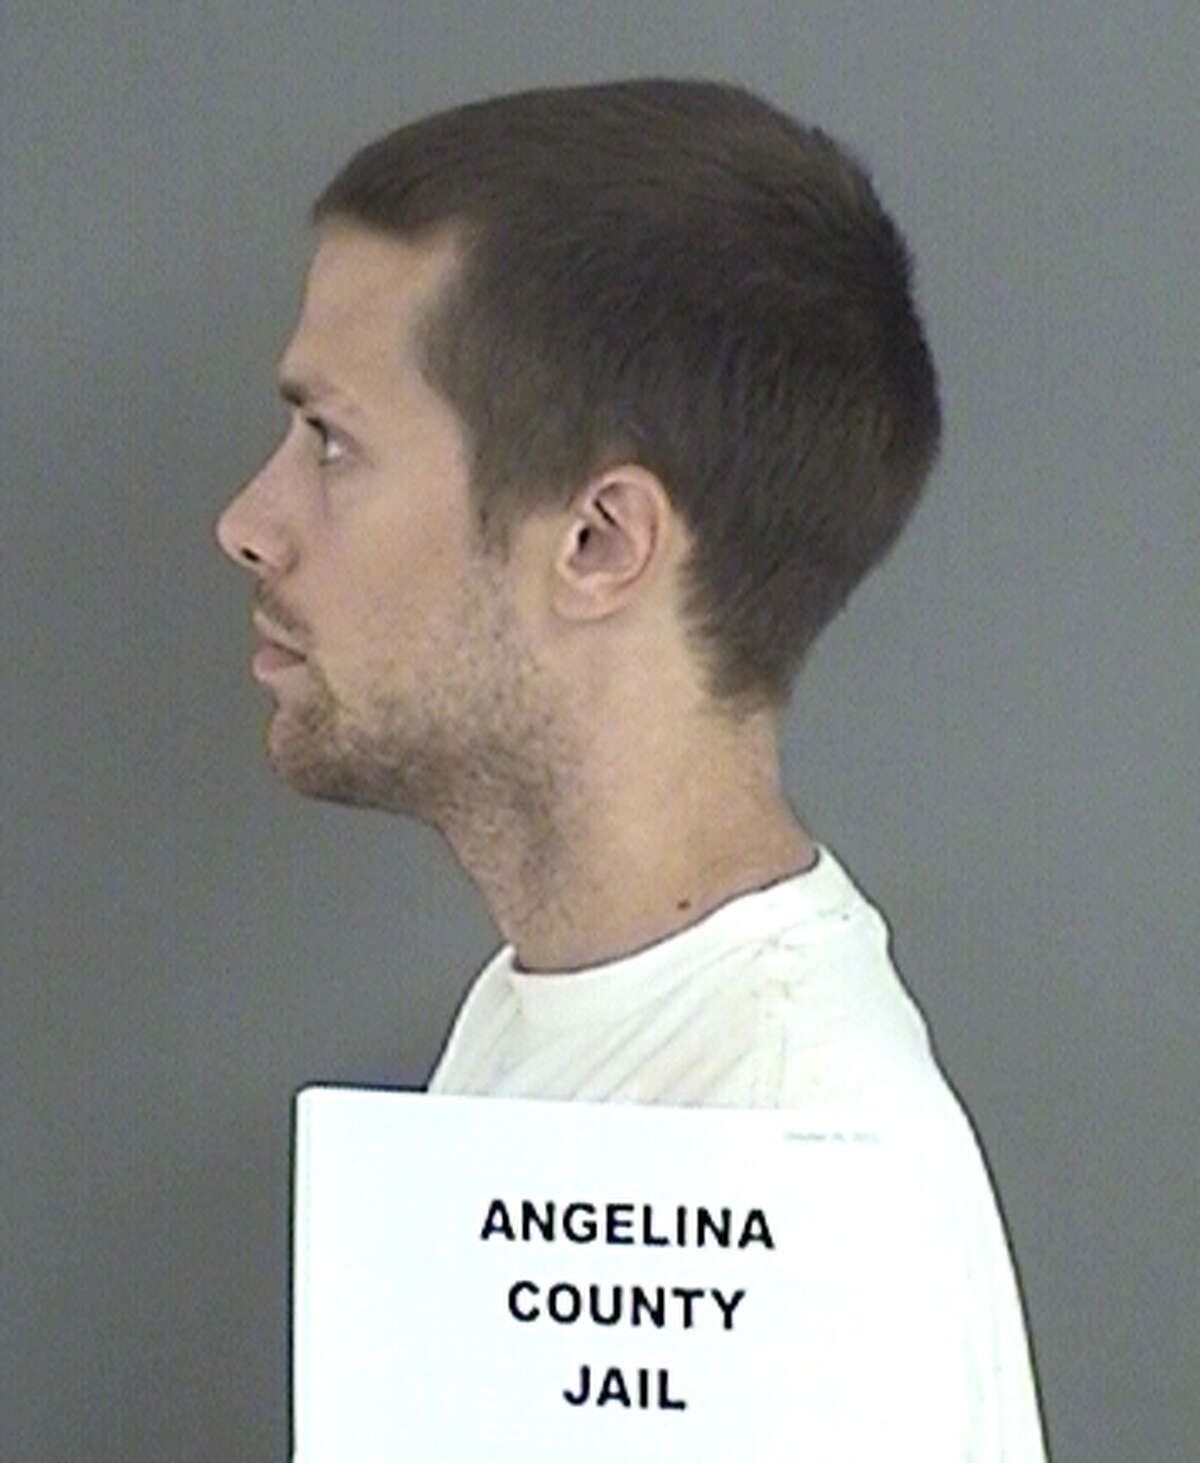 Police and Texas Rangers arrested Justin Welch, 32, Monday in San Antonio. He is accused of killing a woman in Angelina County when he learned she had HIV after she gave him oral sex.